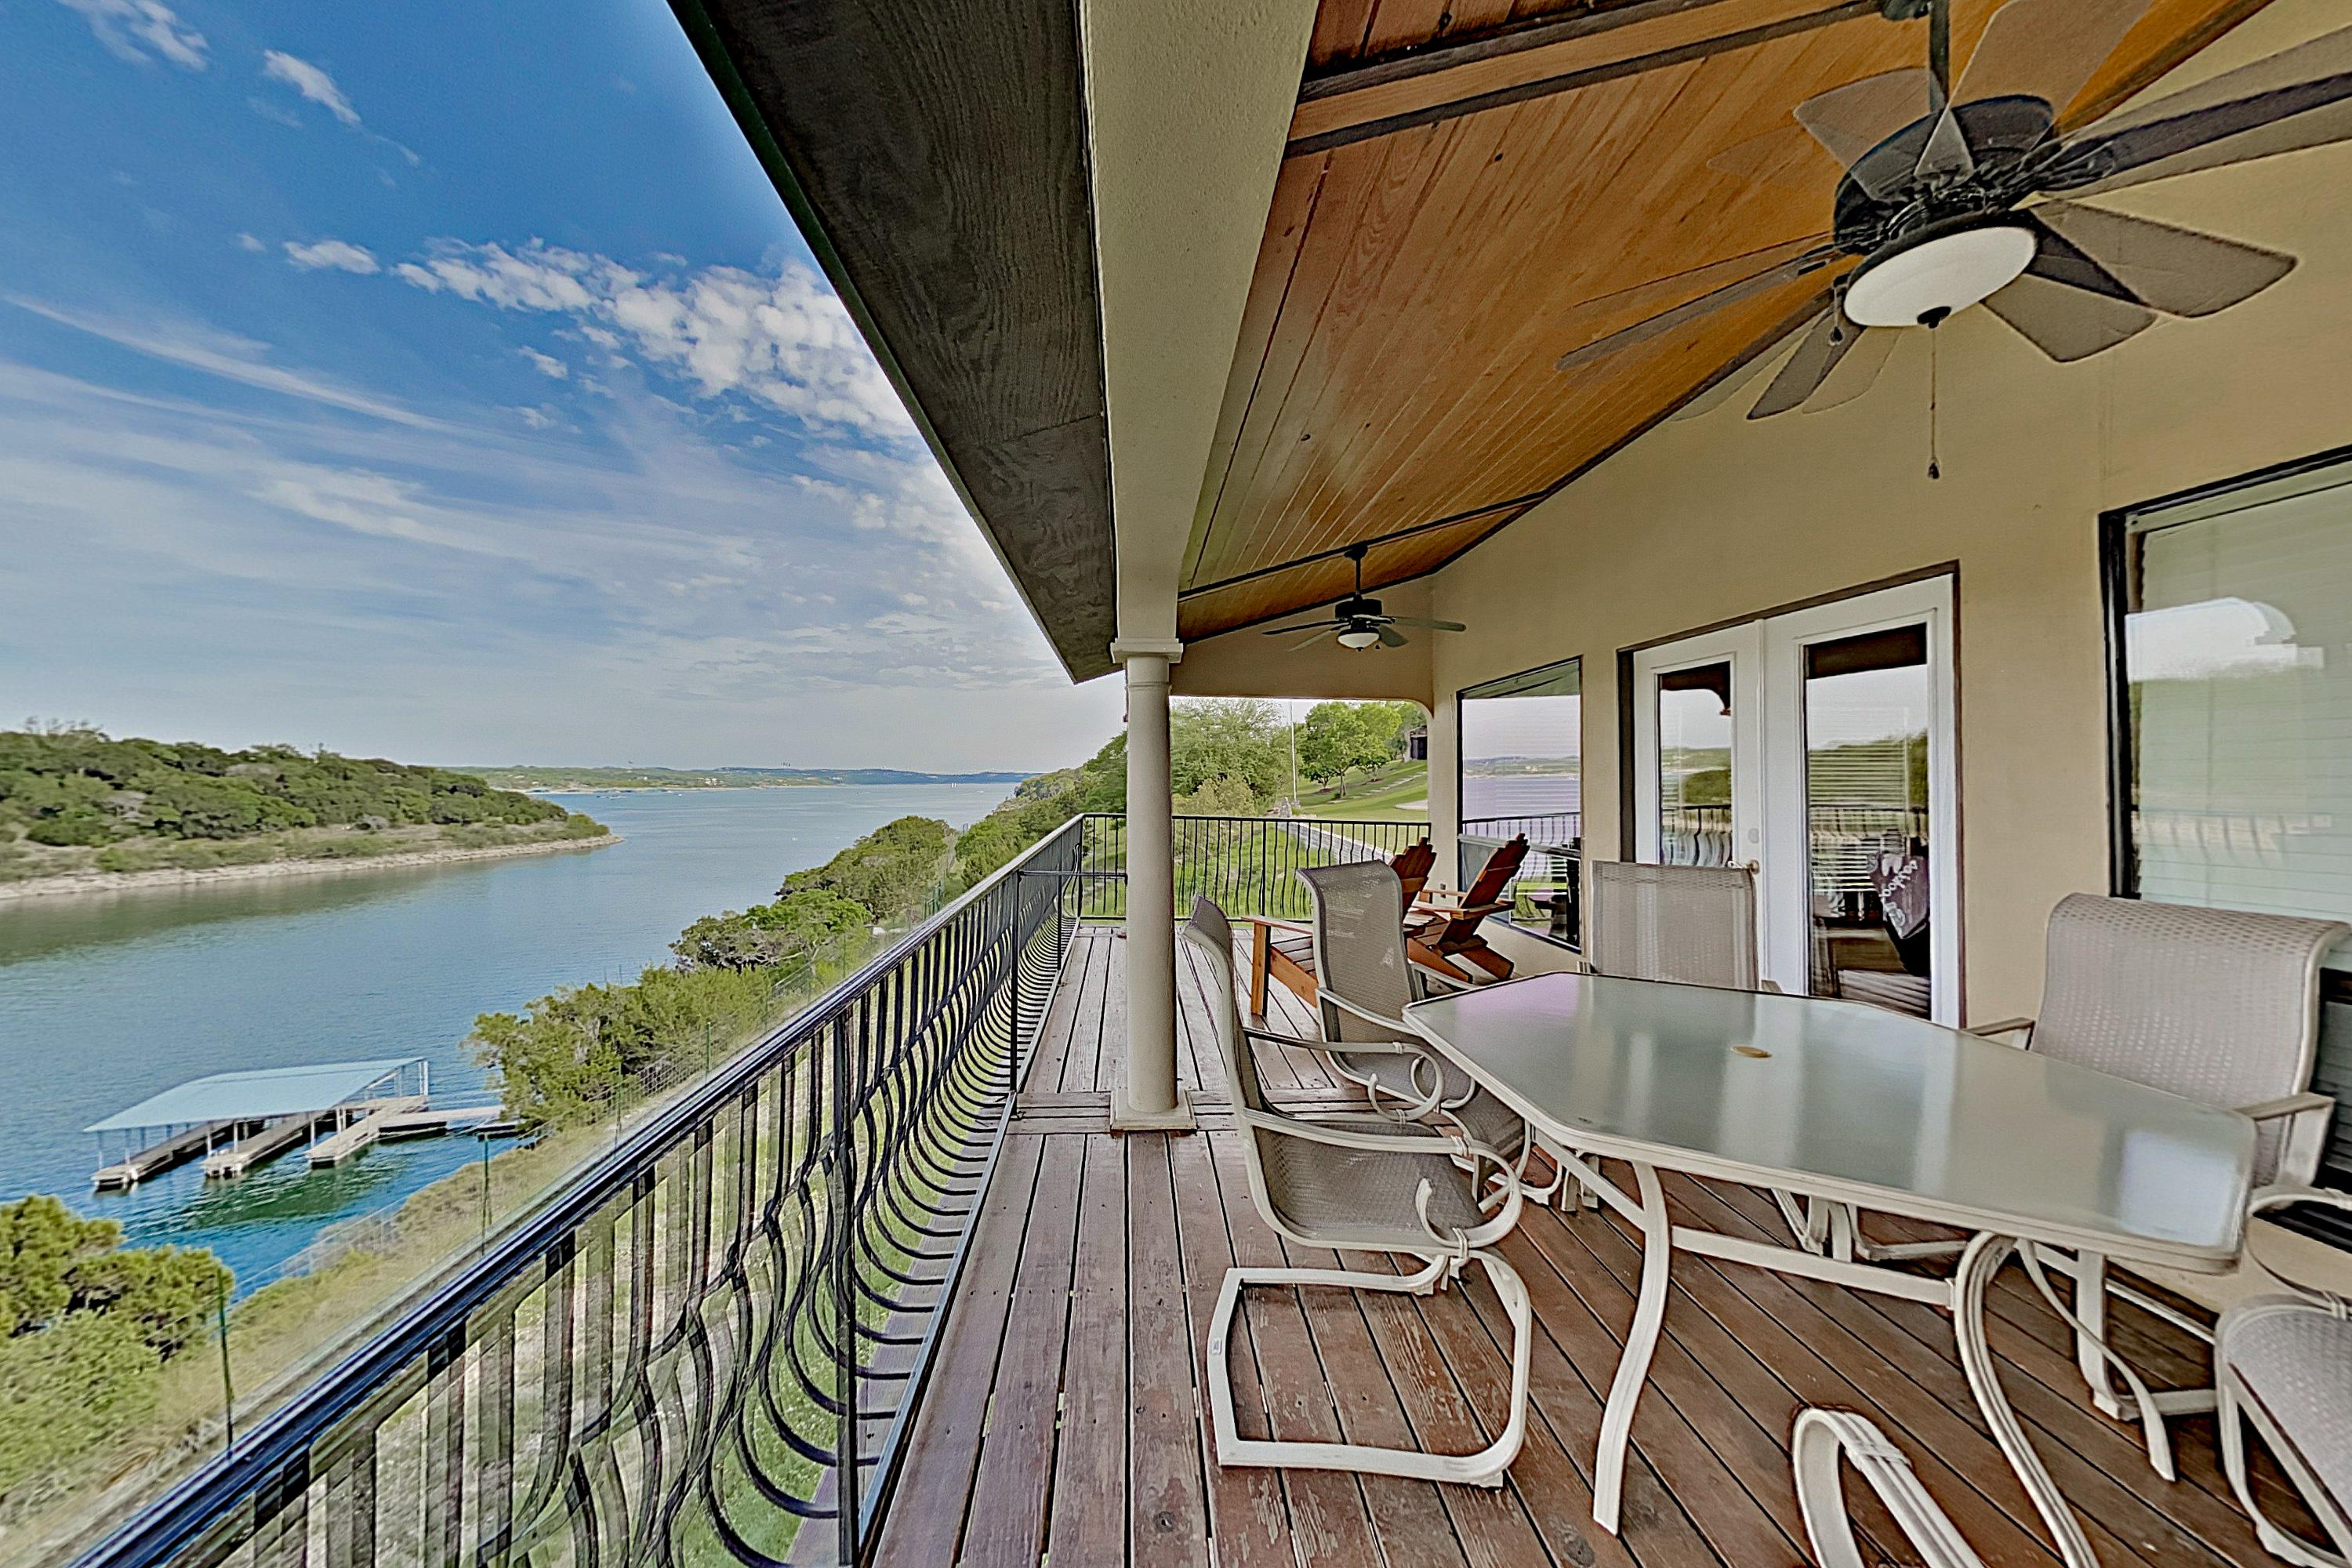 Welcome to Lago Vista! This home is professionally managed by TurnKey Vacation Rentals.